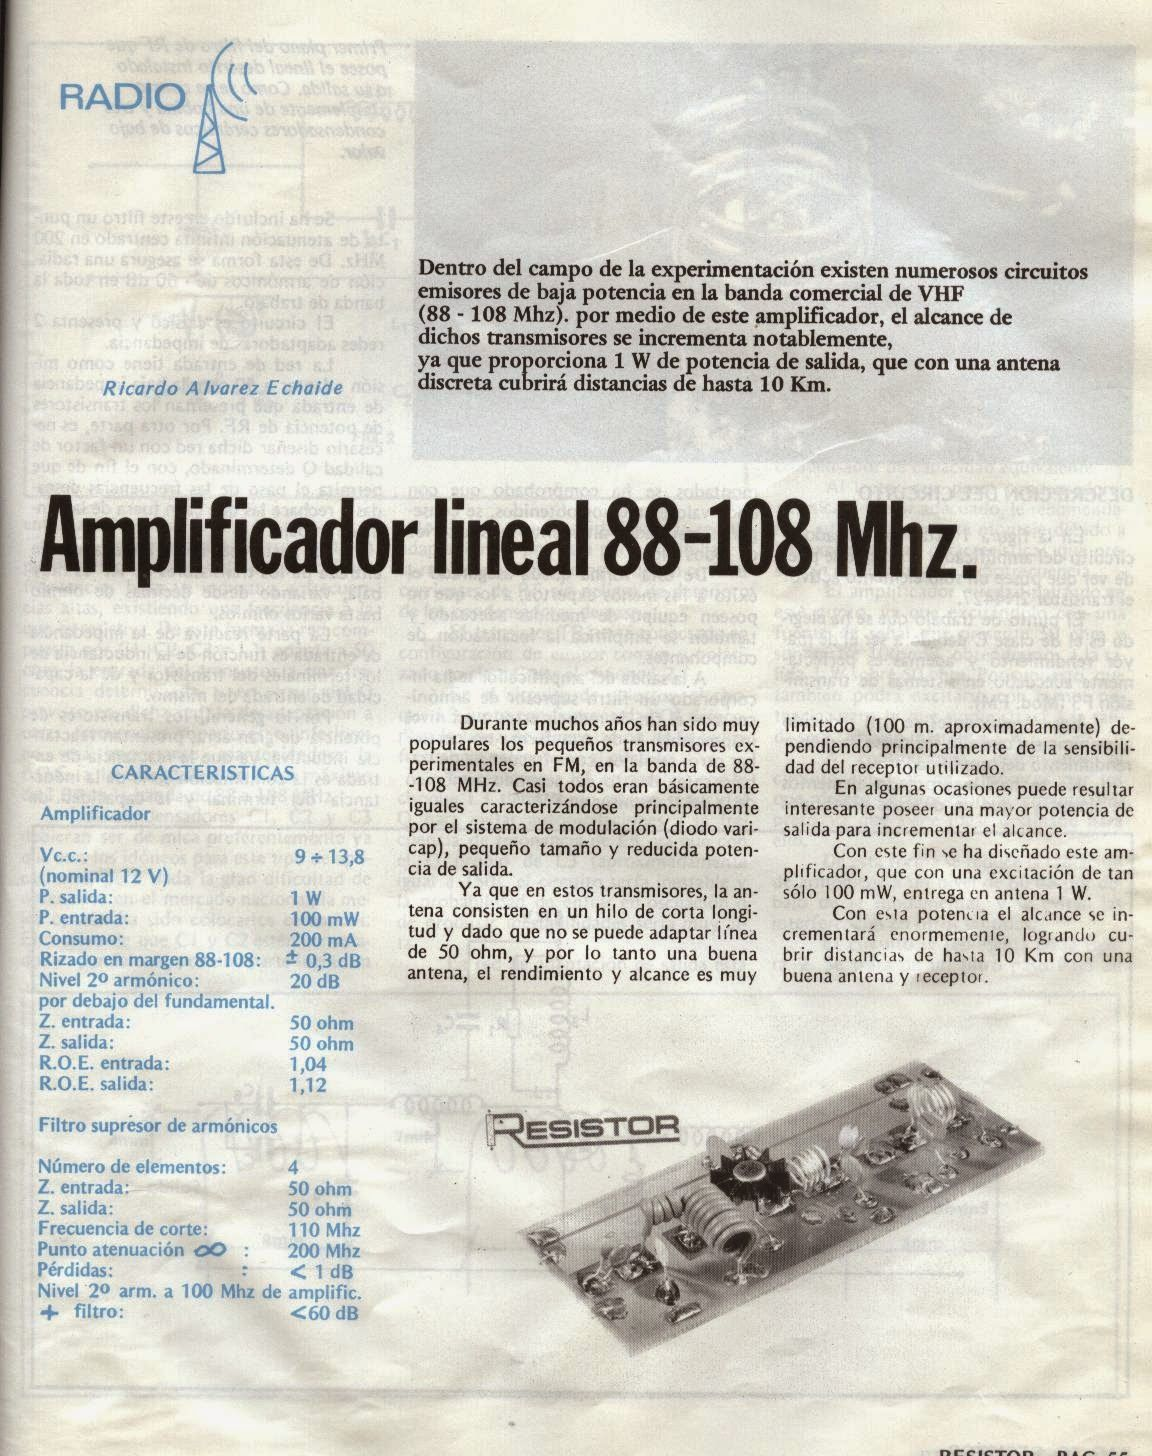 Radio Inestable Amplificador Fm 88 108 1w Revista Resistor N5 19 Low Pass Filter For Mhz